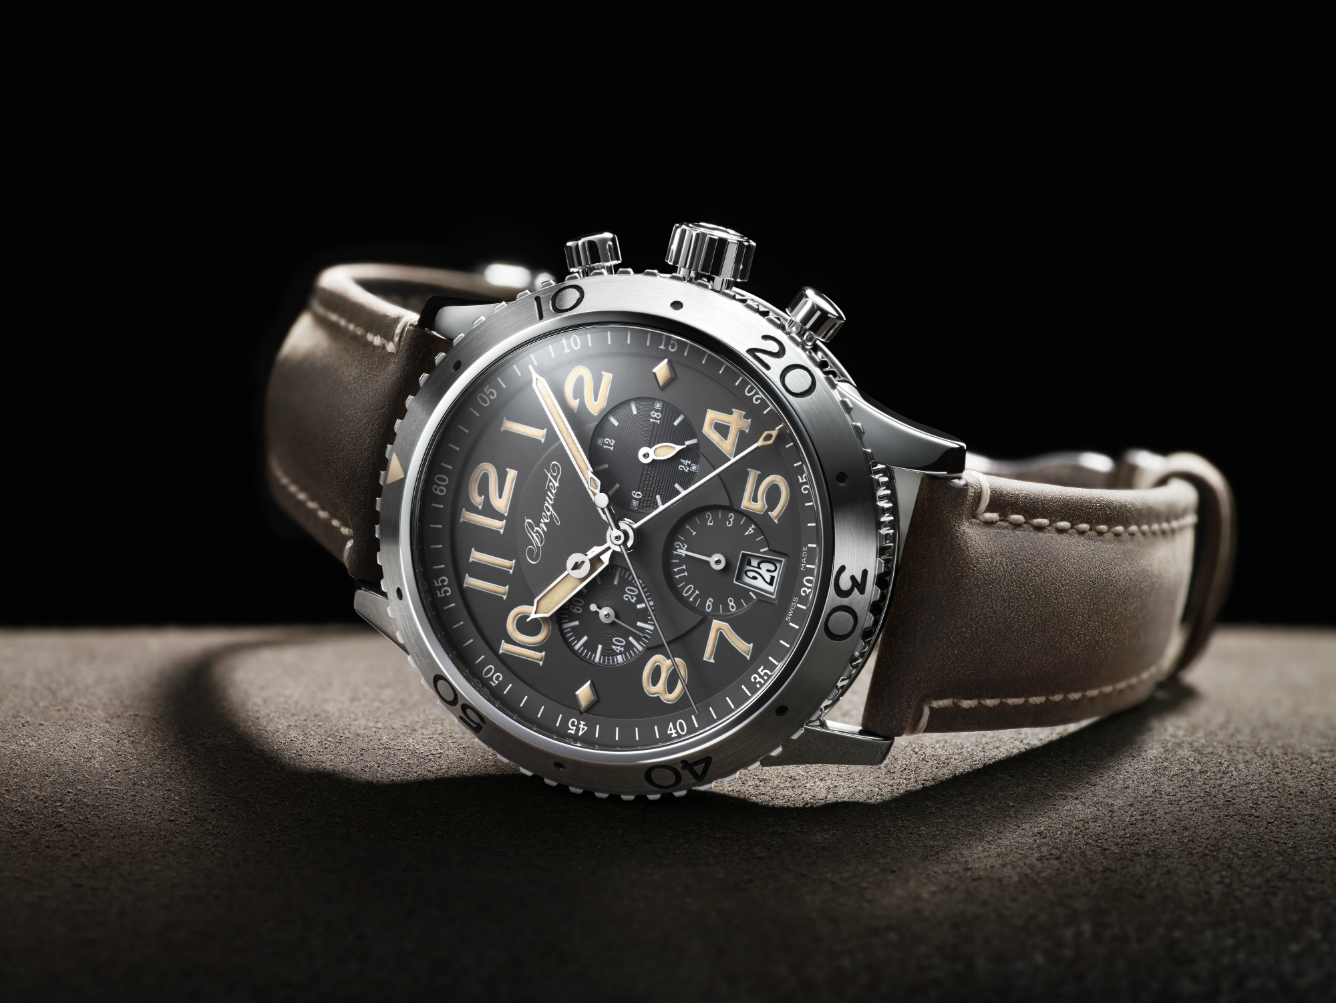 Breguet-Type-XX-3813-Only-Watch-2015.jpg